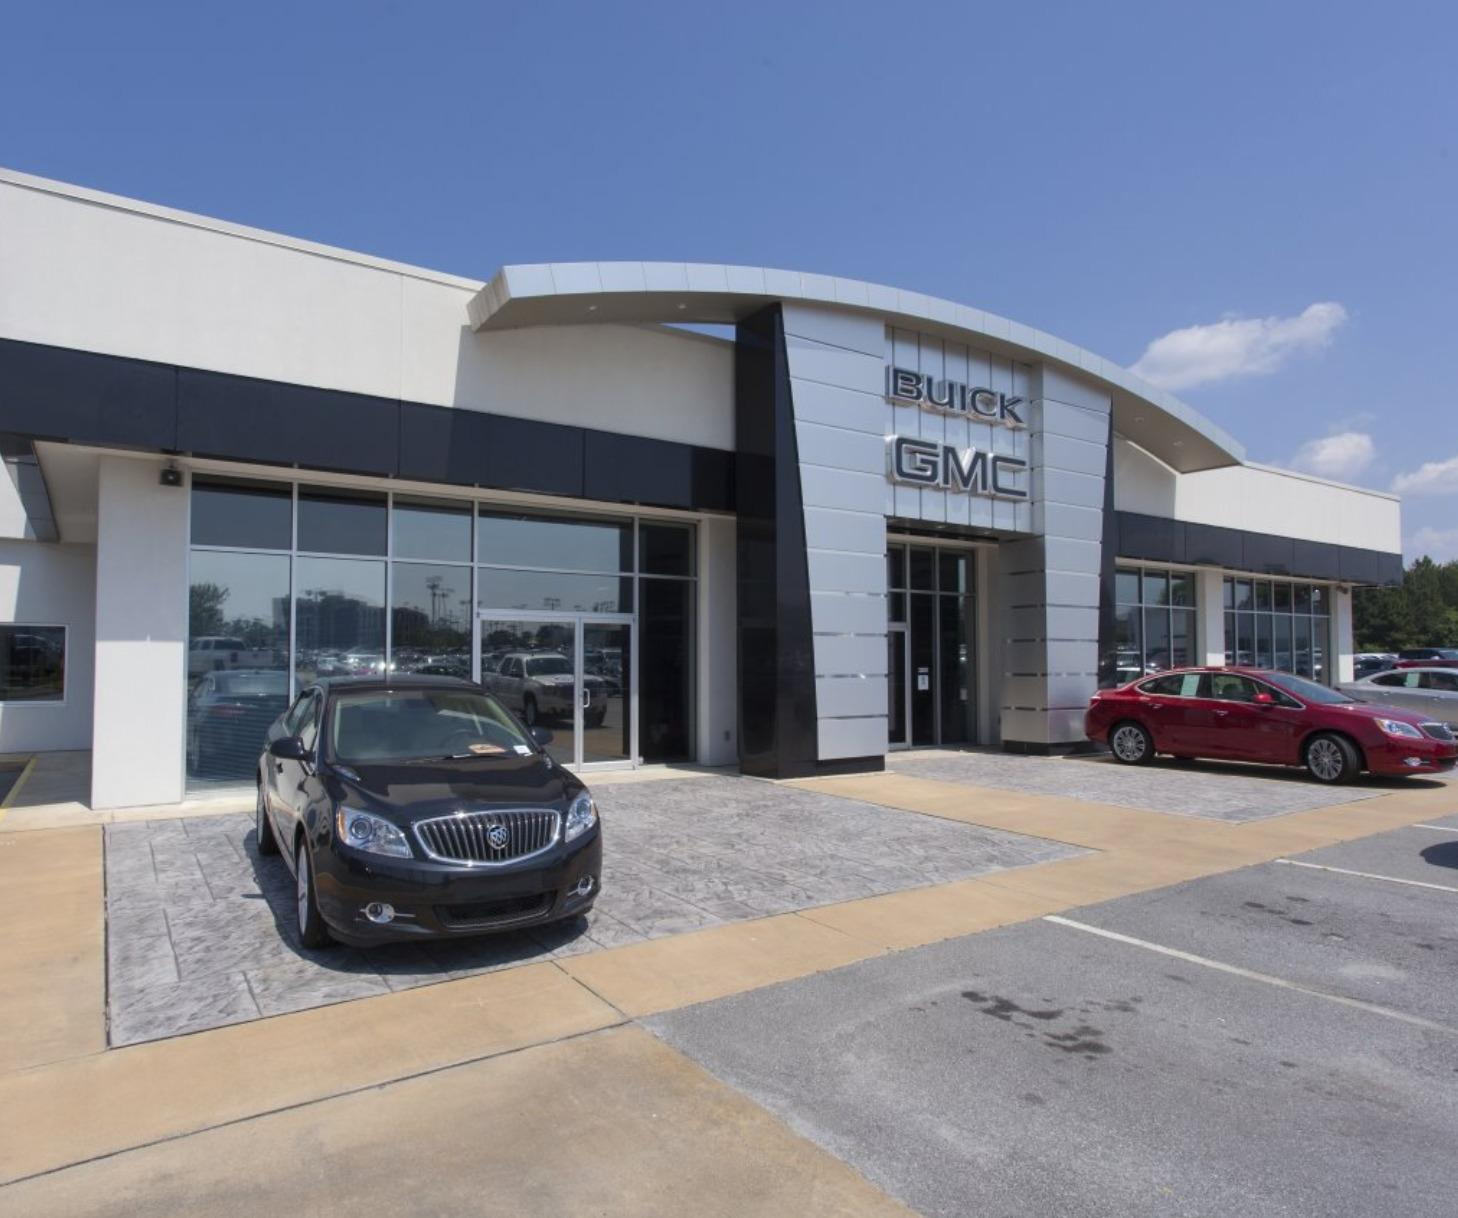 hennessy ad new gmc buick newspaper ga dealership morrow in htm